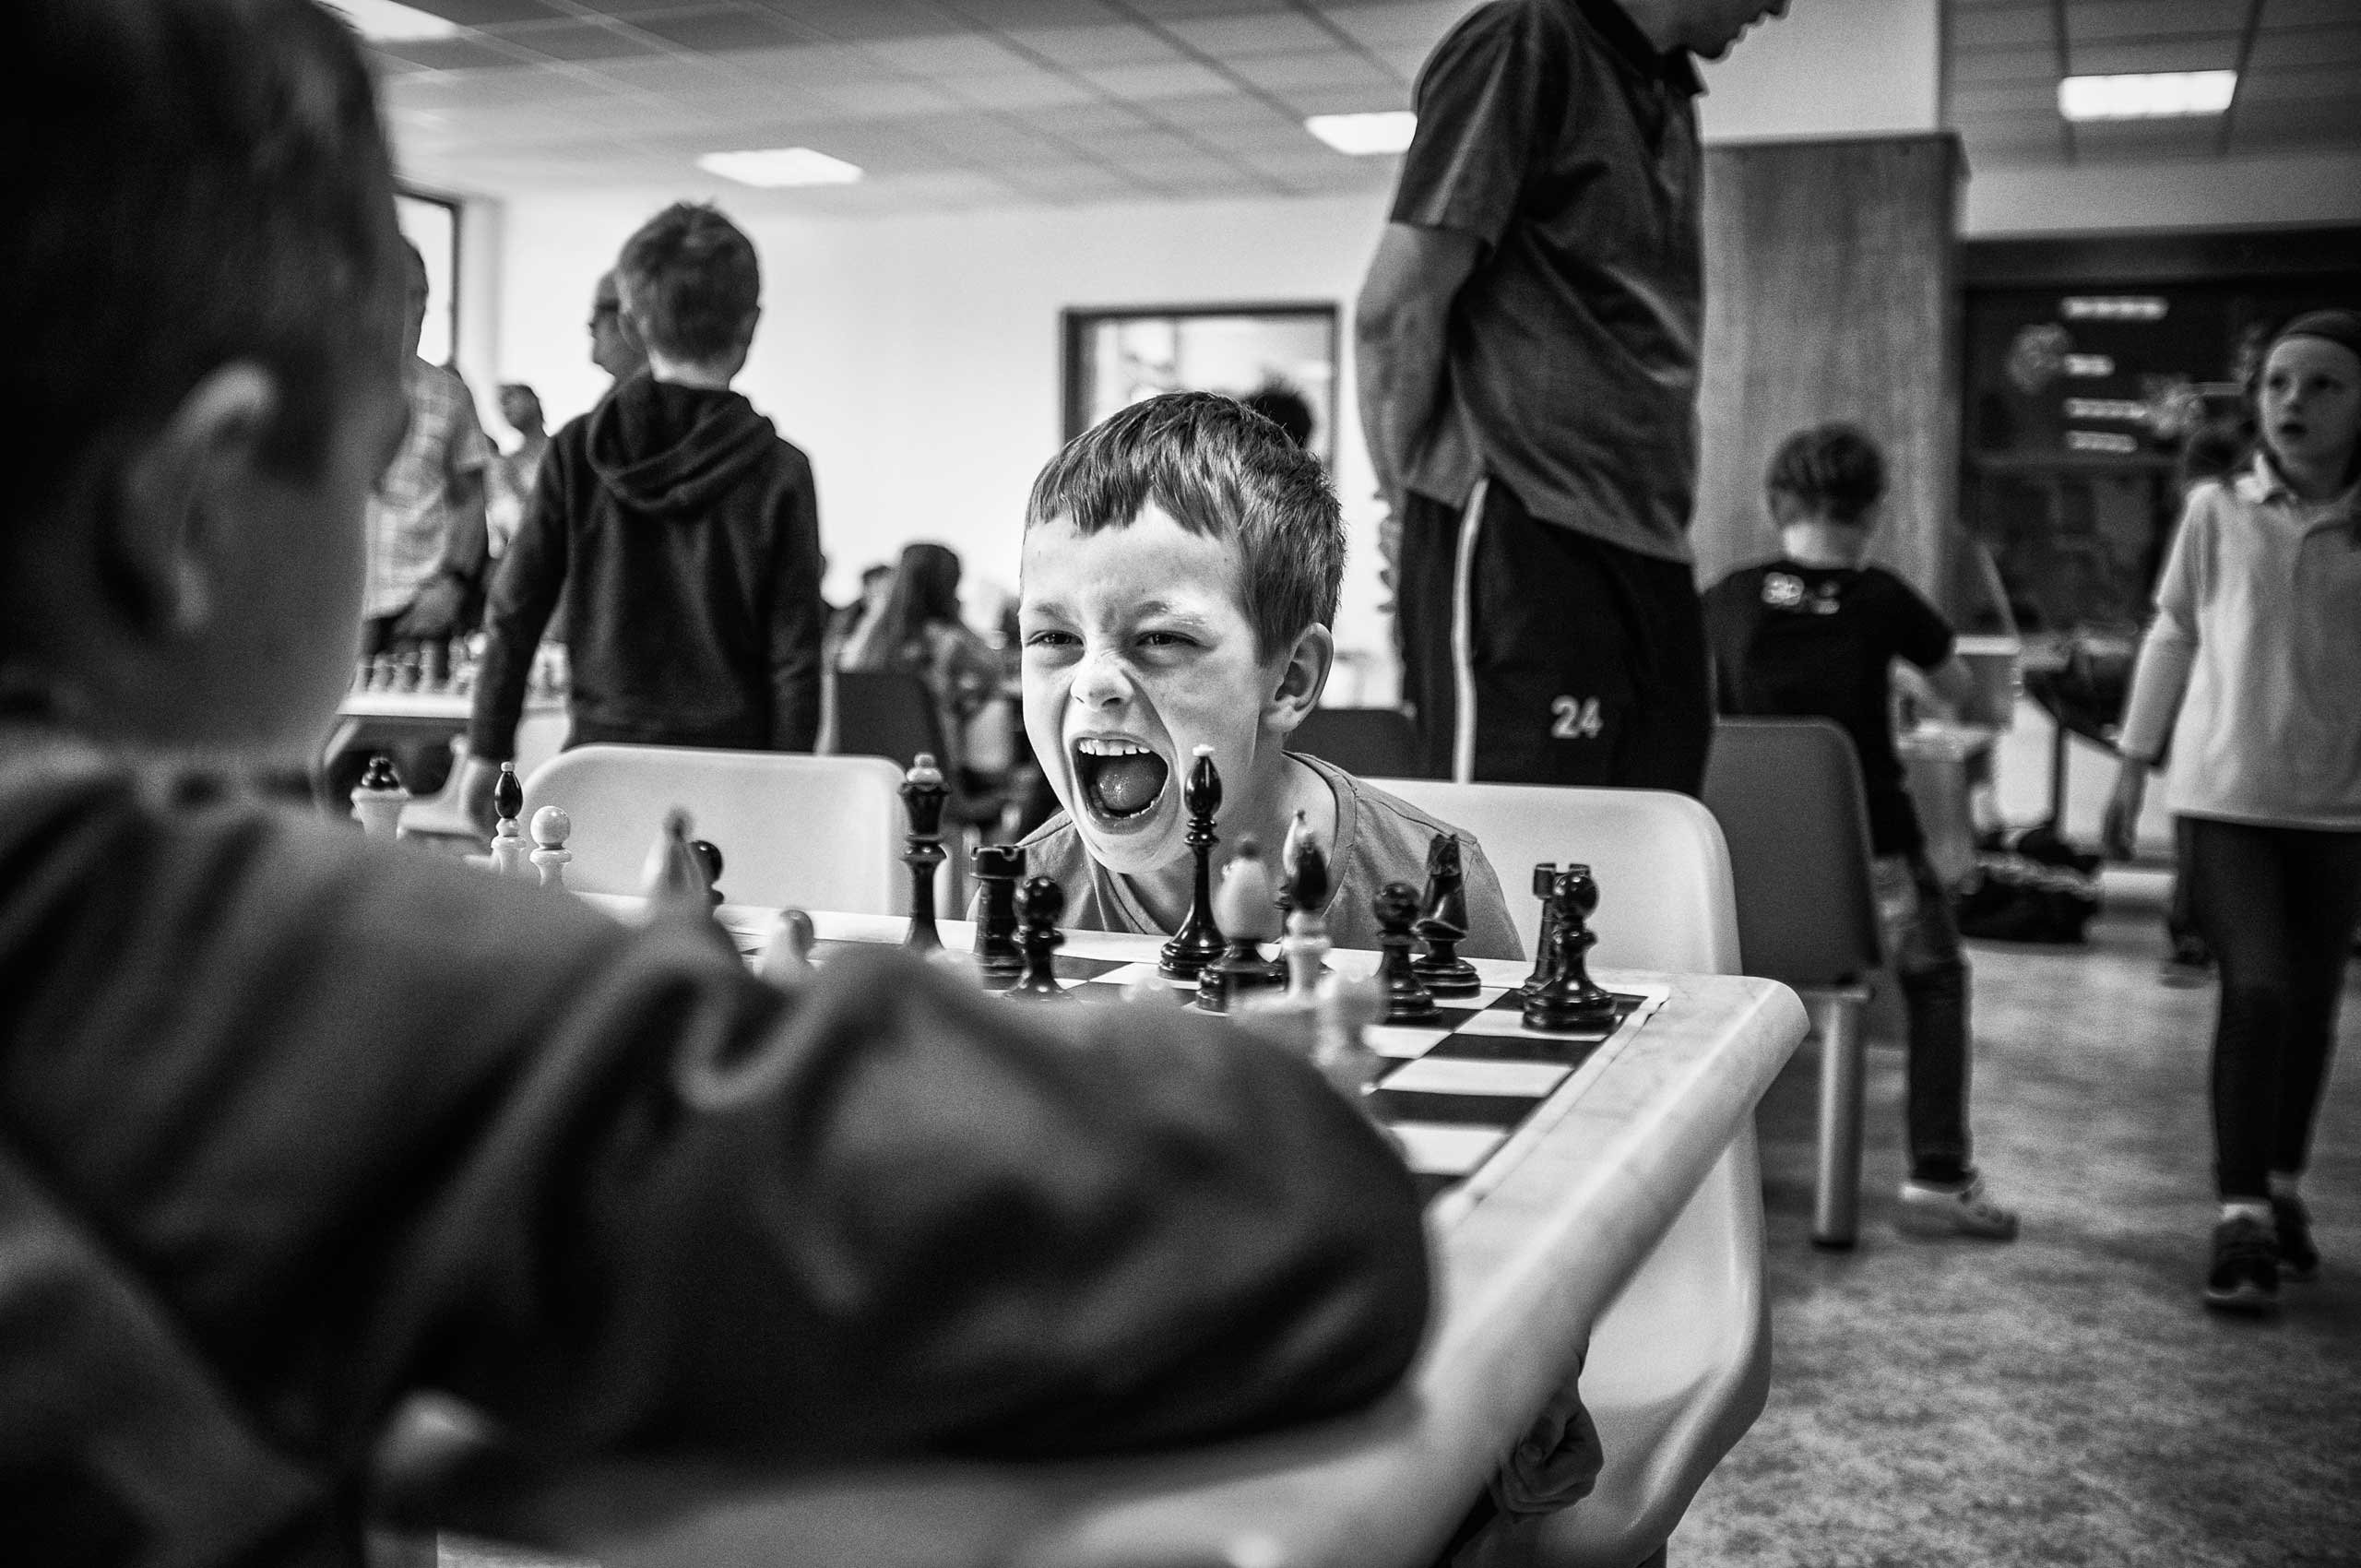 The chess player expresses his emotions during a game of chess.